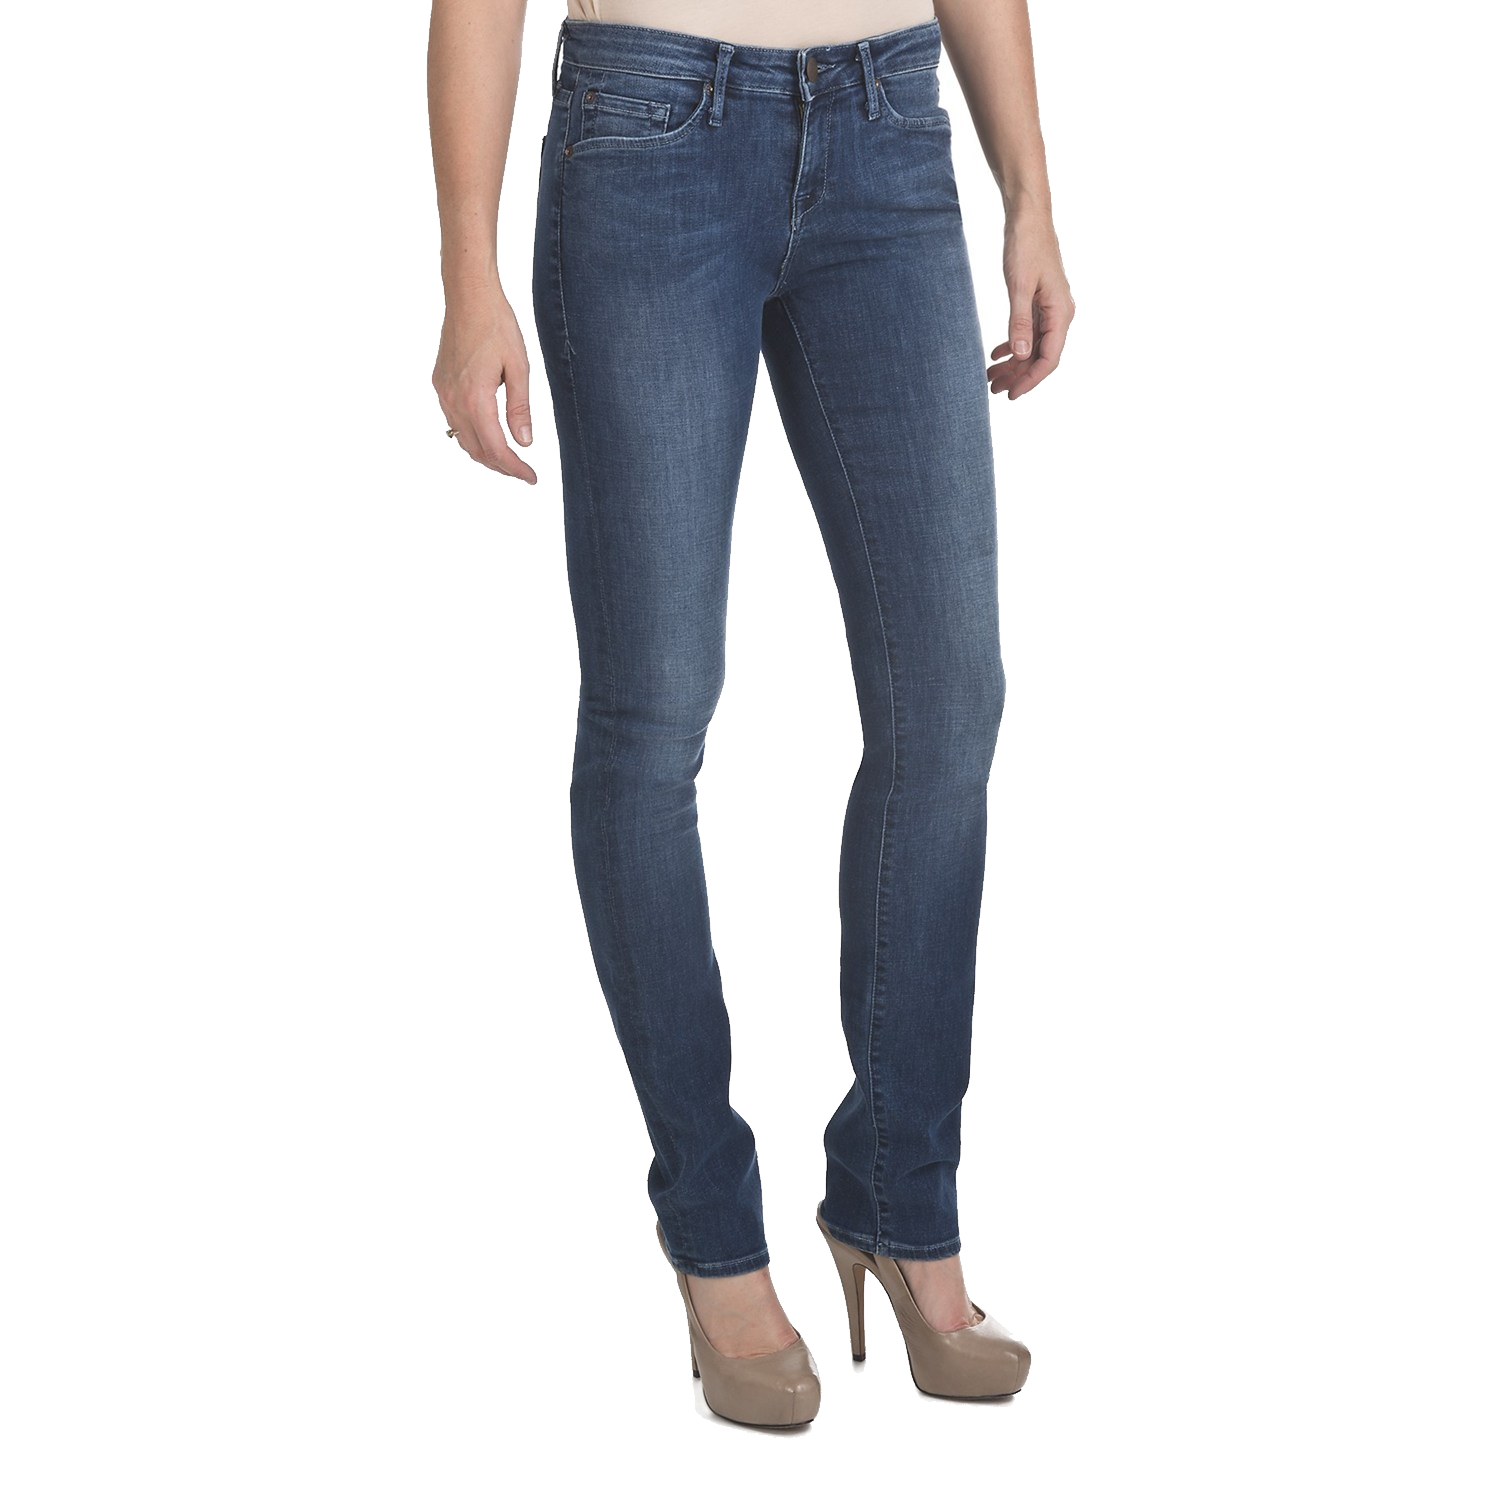 Skinny jeans png. Images free download image